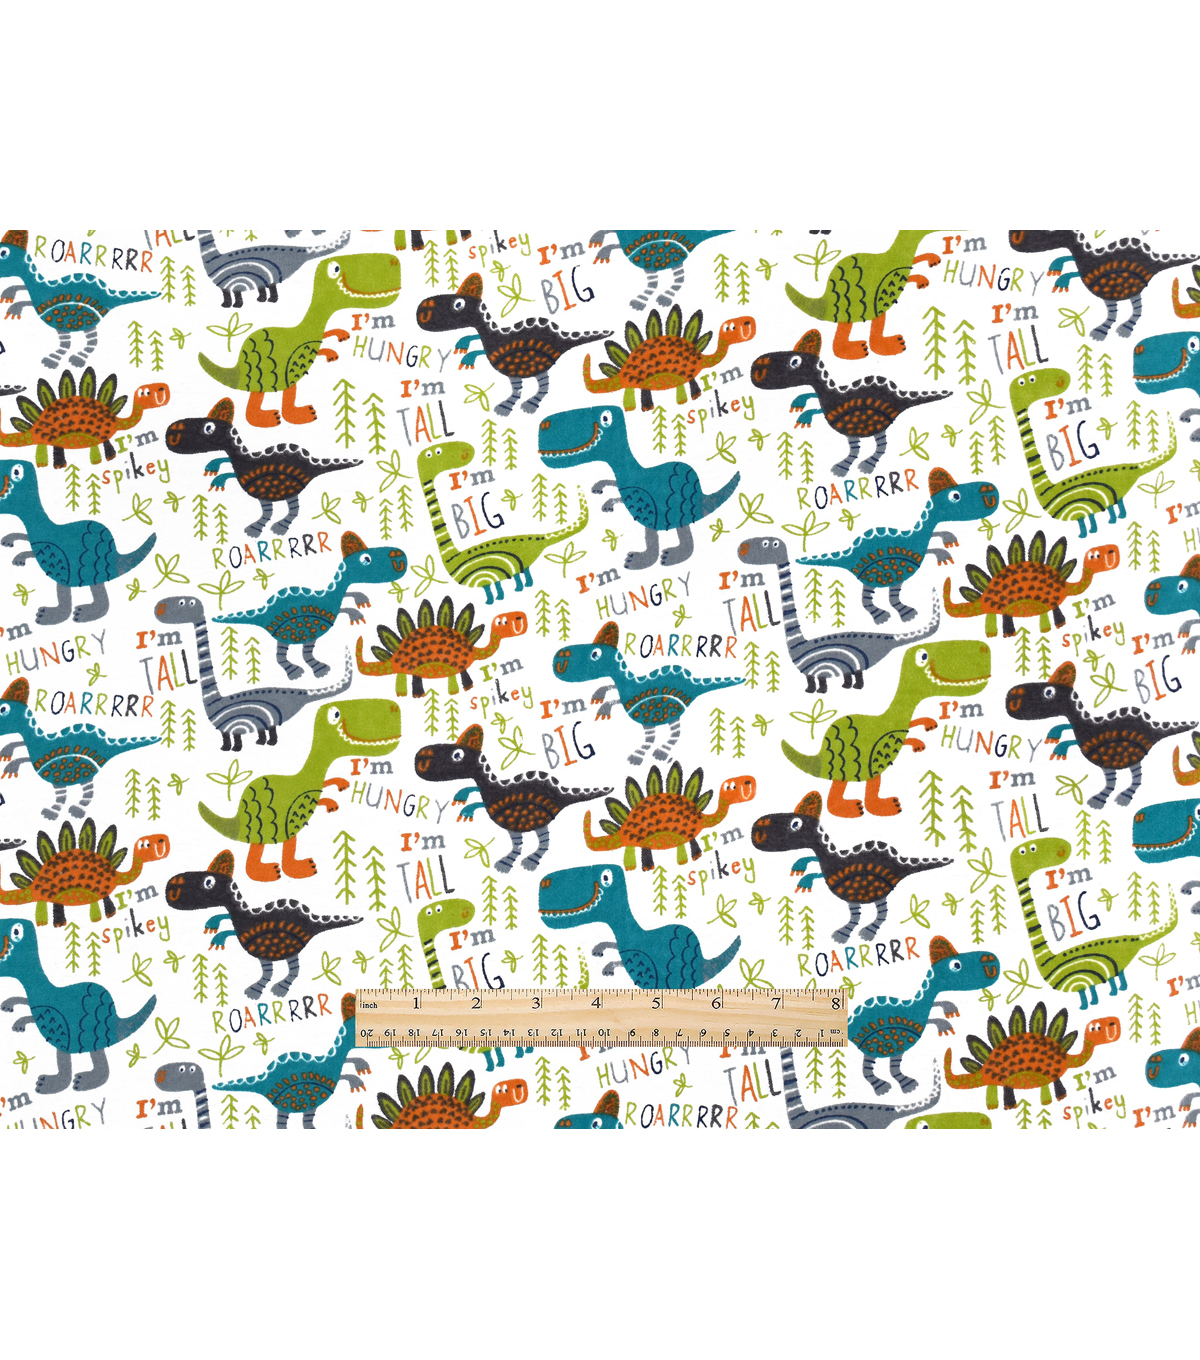 Snuggle Flannel Fabric 42\u0022-Roarrrrr